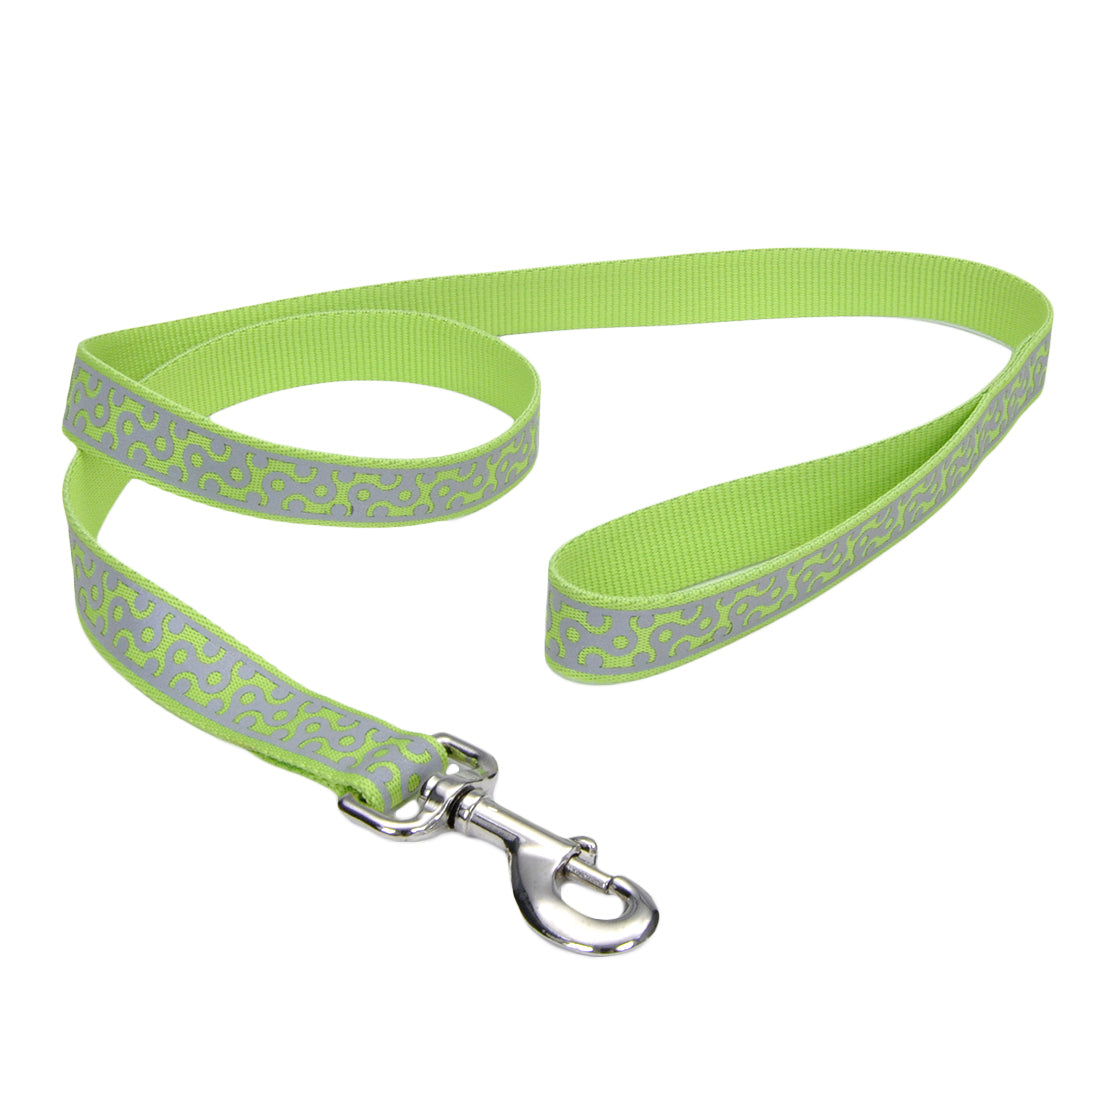 "Coastal Lazer Bright Reflective Leash 6' - 3/8"" Lime Geometric"